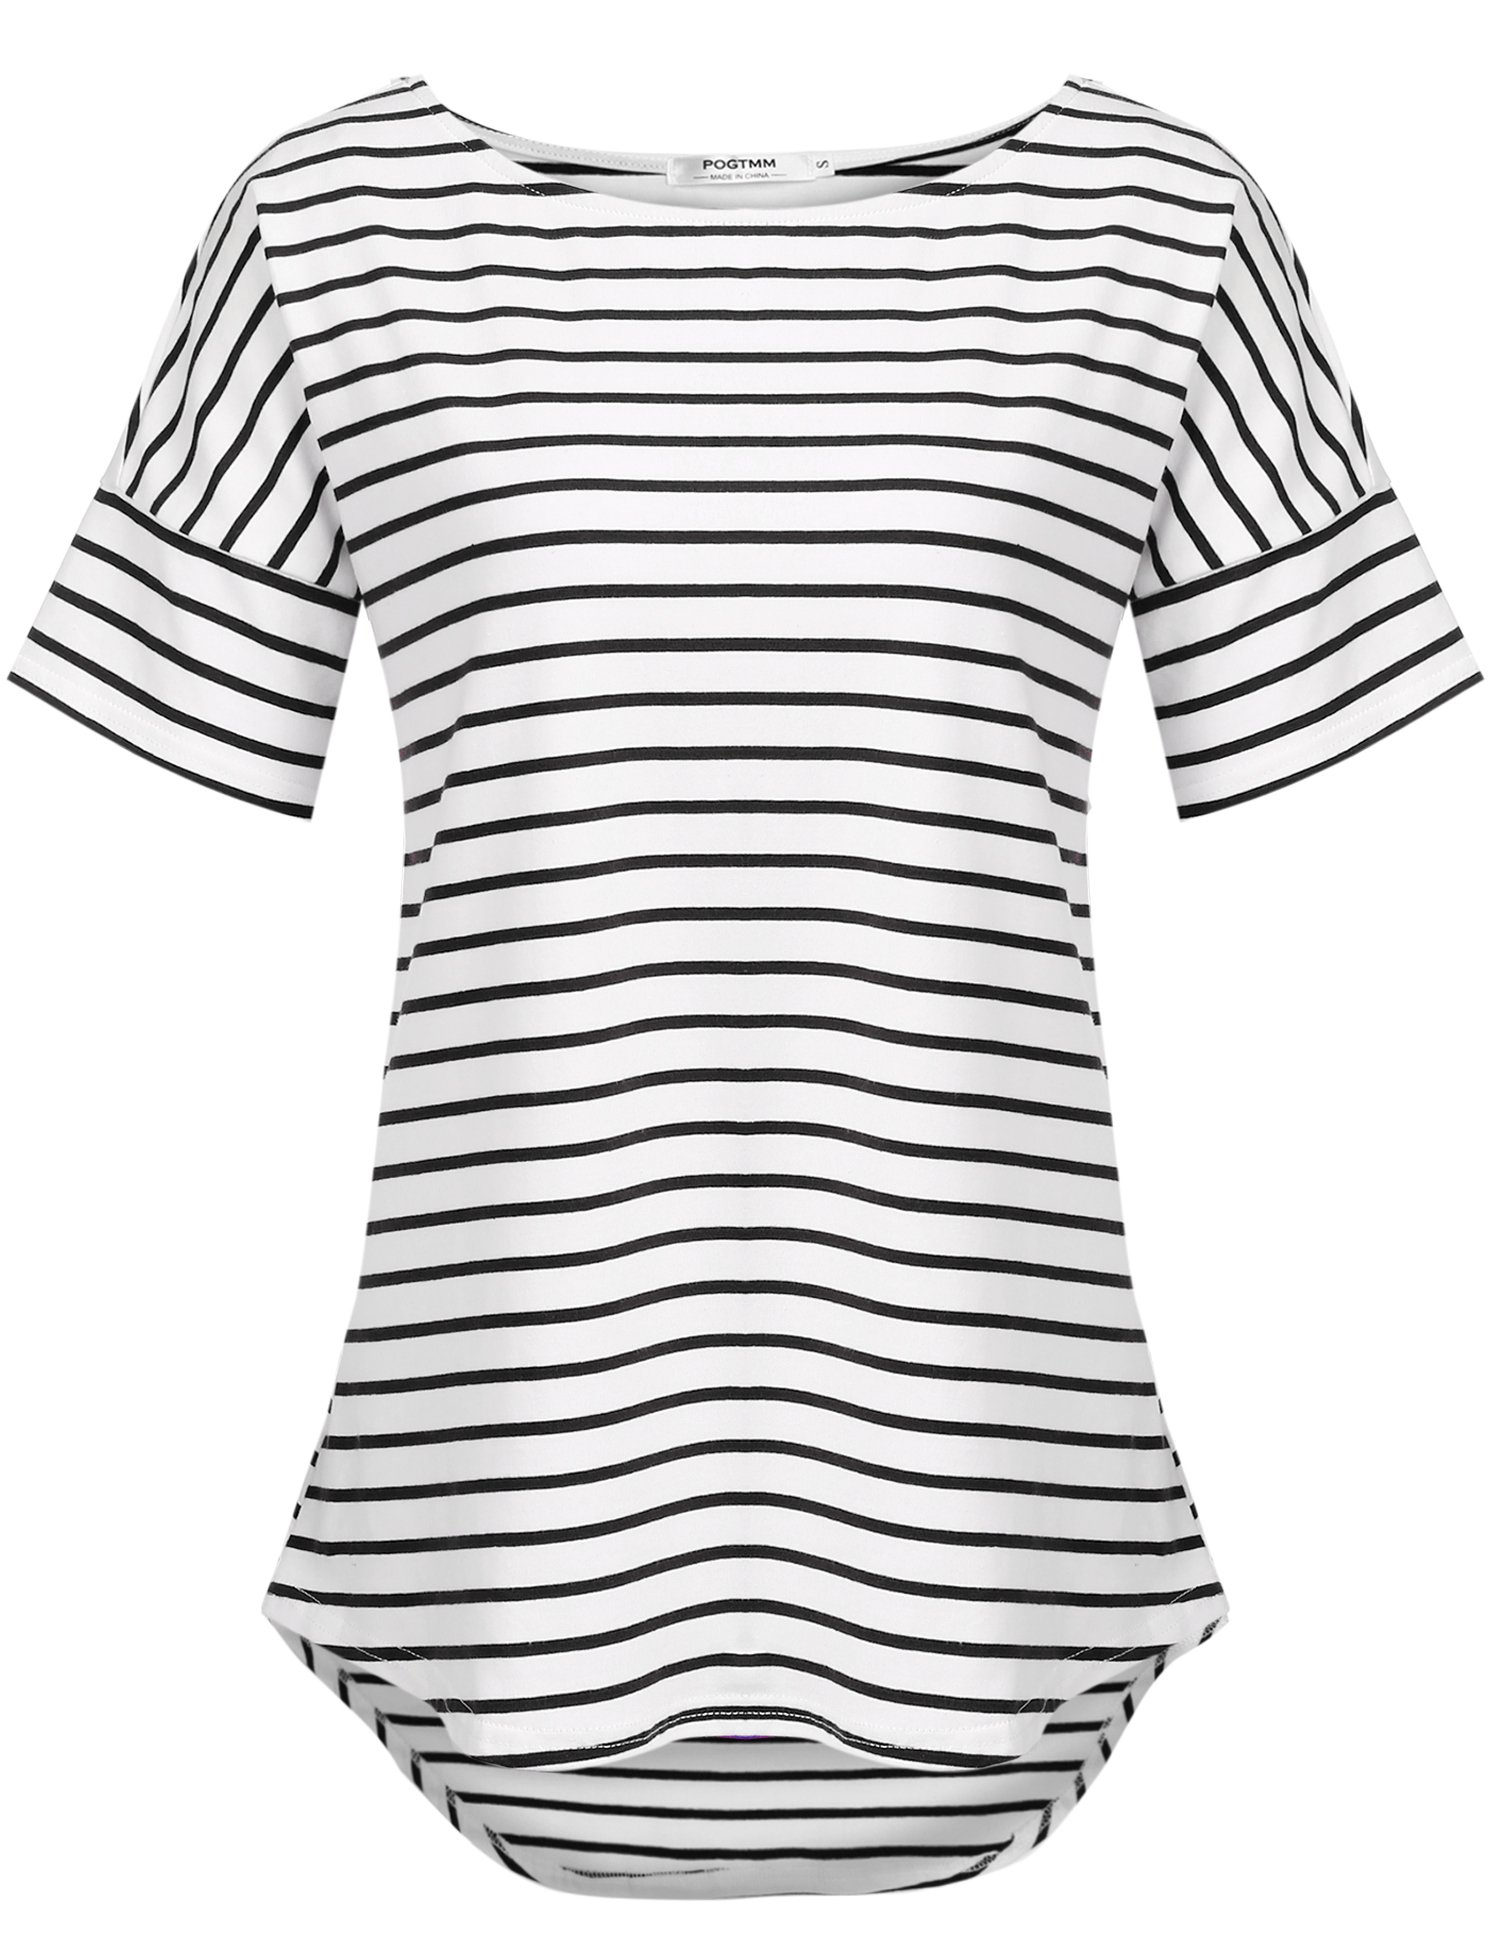 POGTMM 2018 Women's Casual Striped T Shirt Tee Tops (Black&White, US M(8-10))